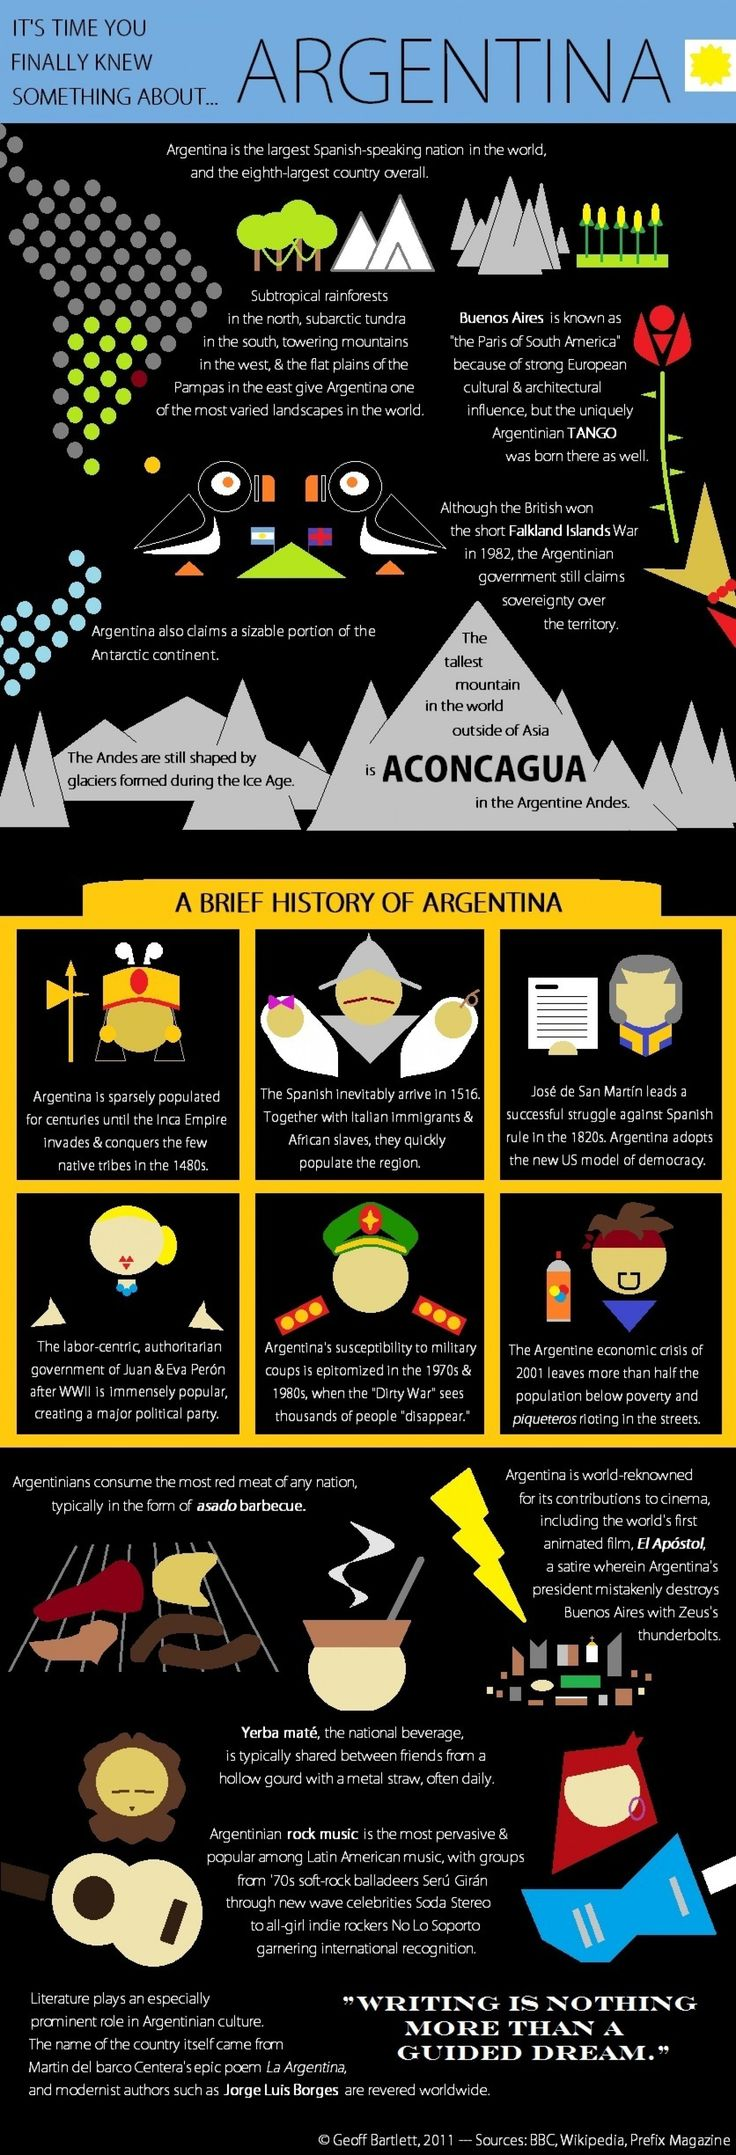 What's New, Buenos Aires? Infographic